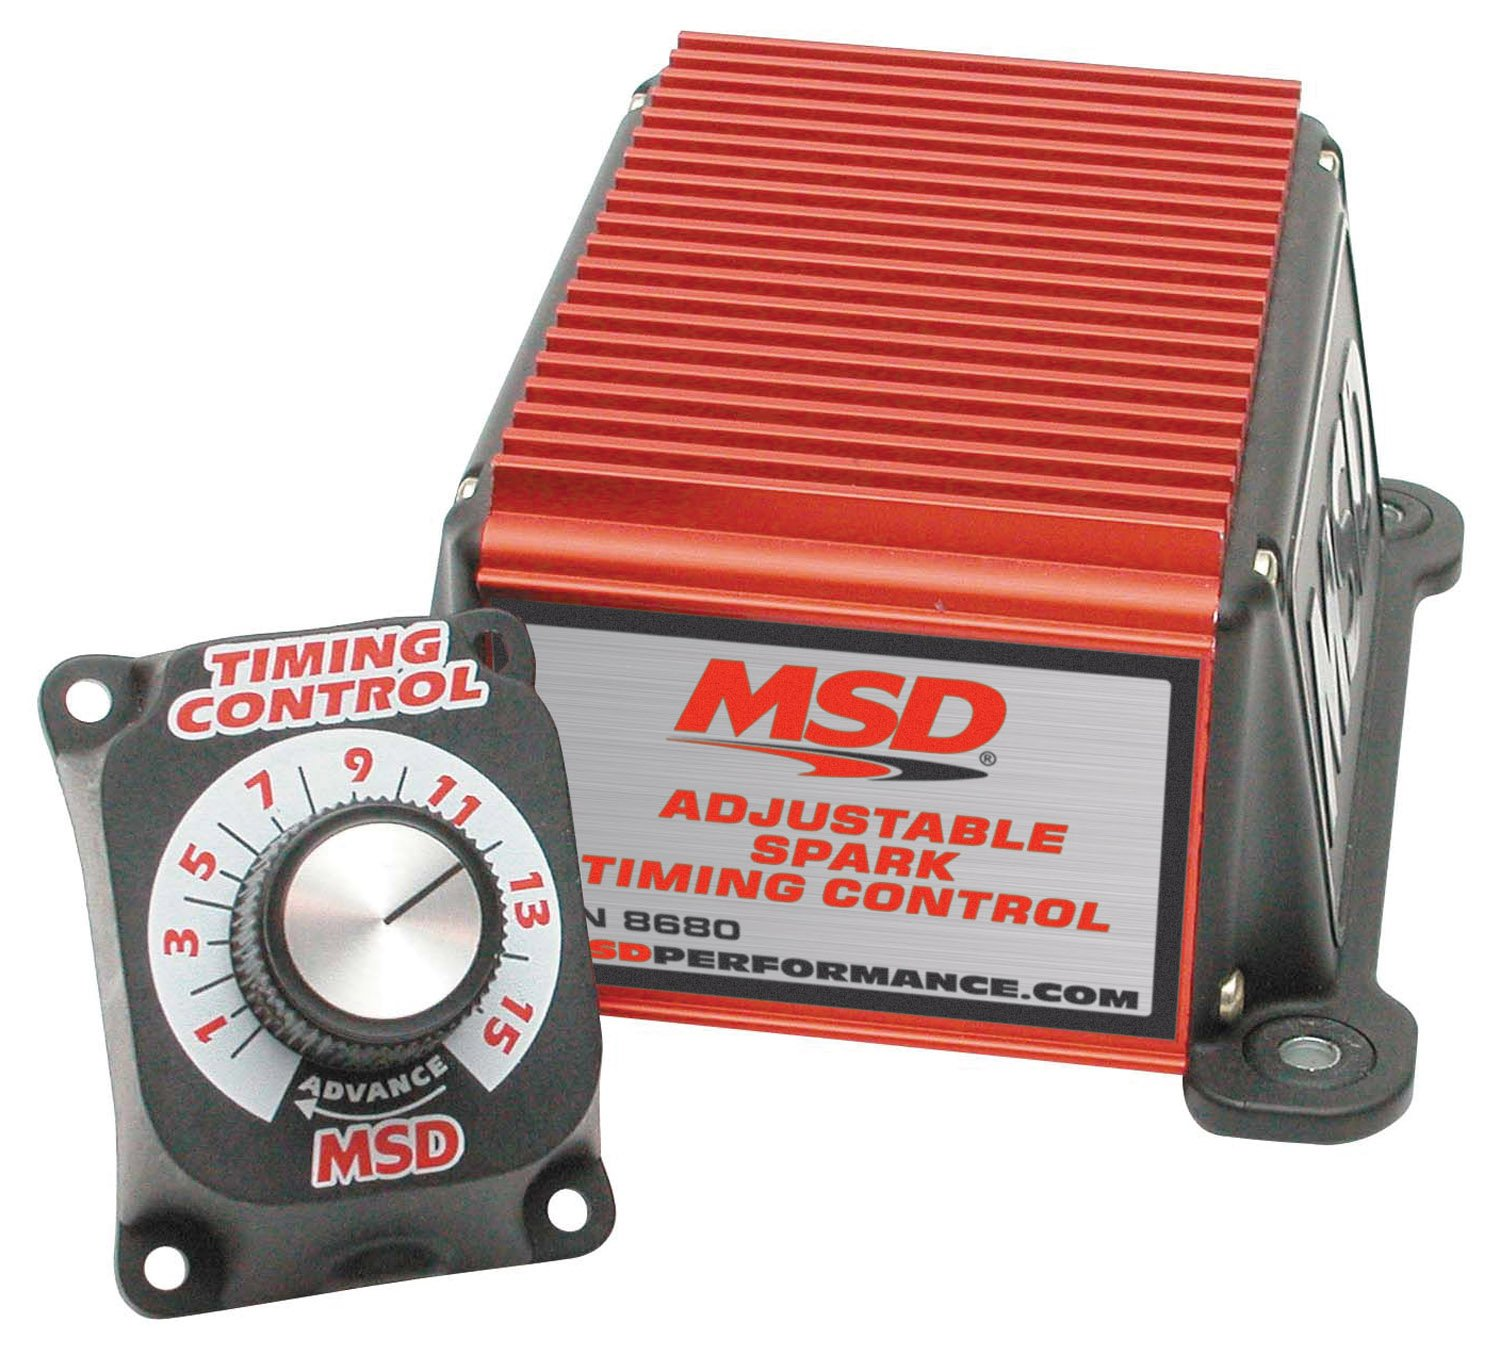 msd 8680 adjustable timing control rh holley com